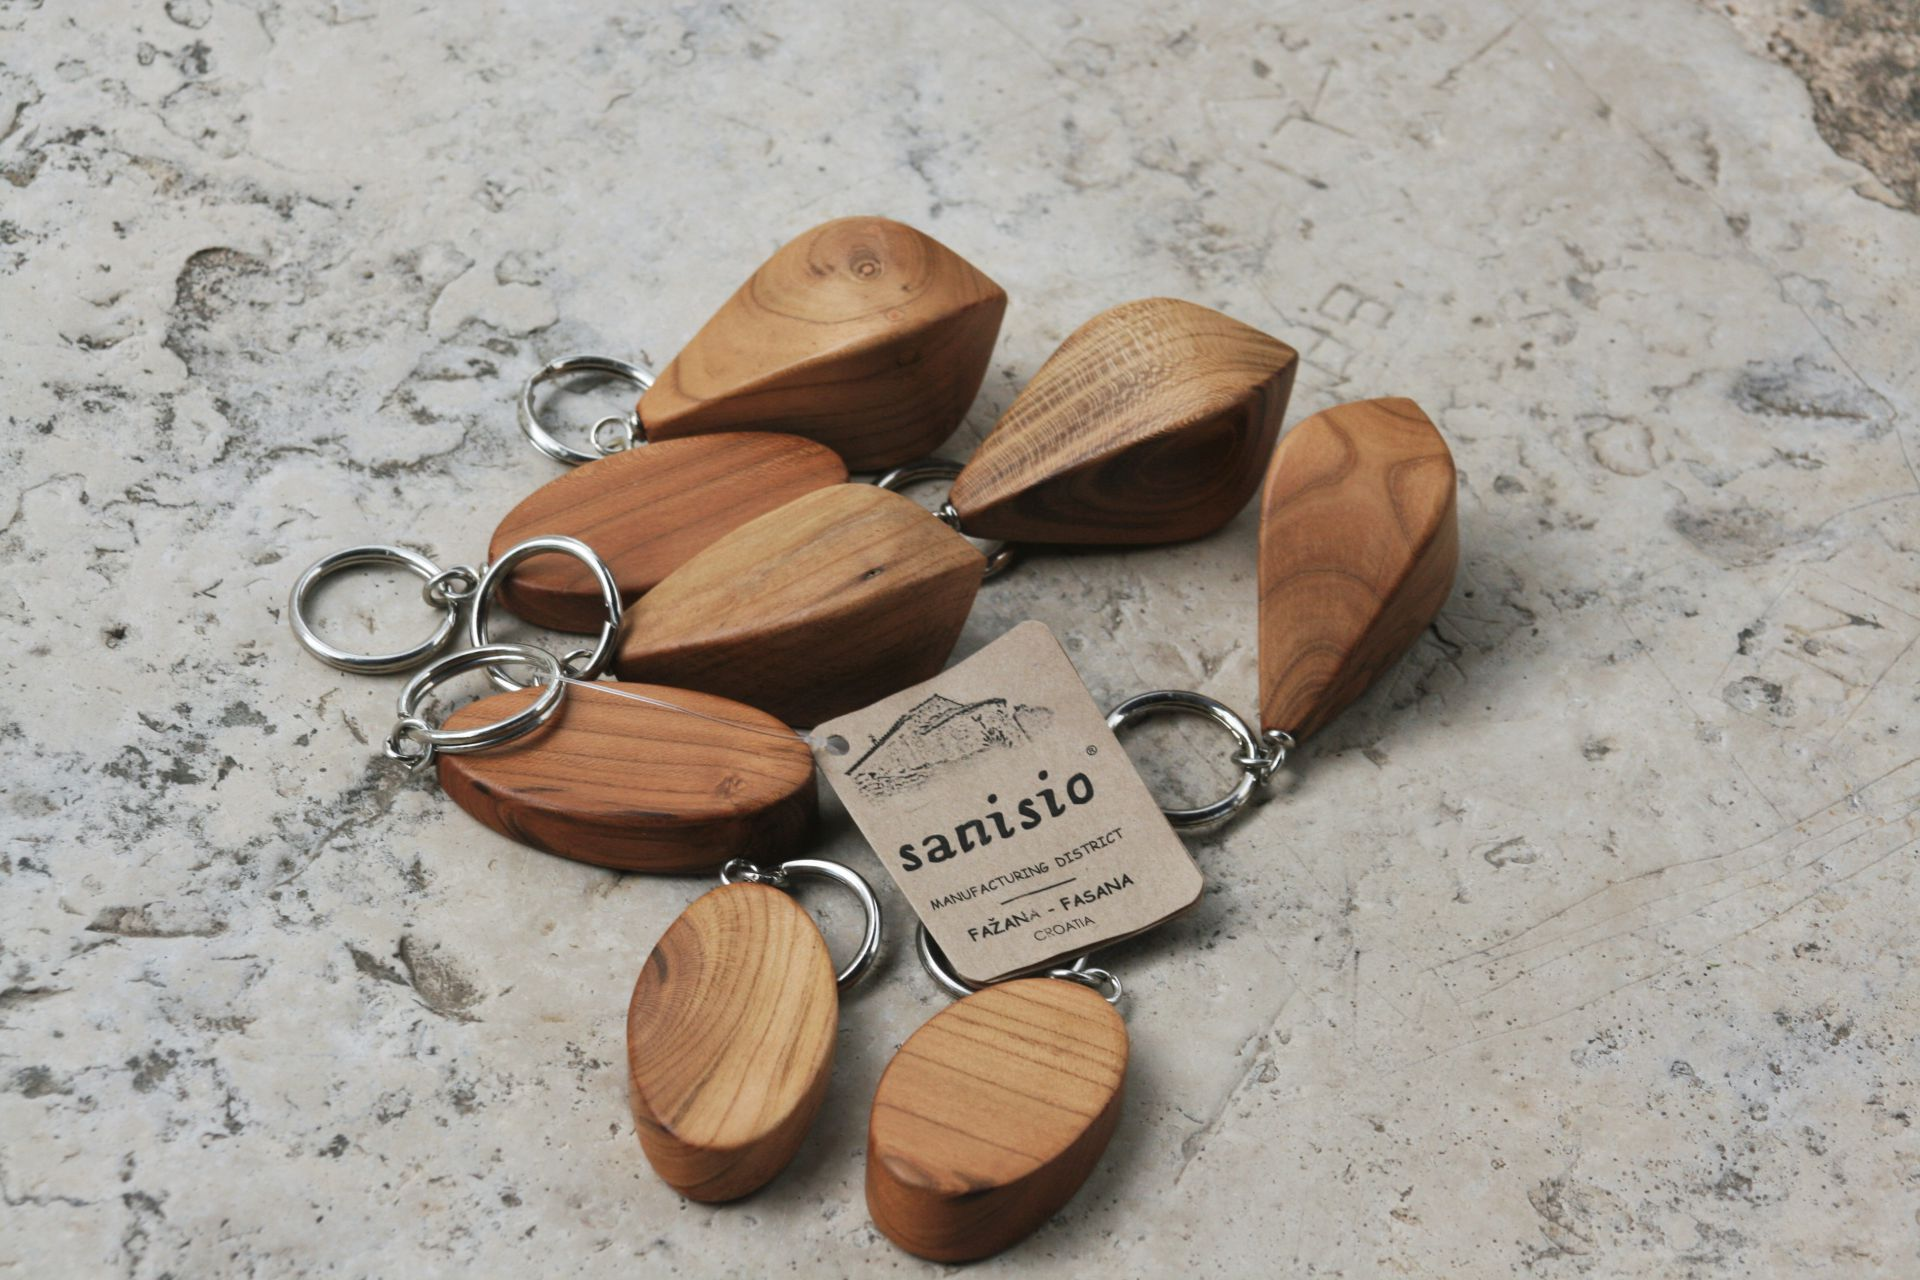 apricot wood key rings car keys unique handmade sanisio artist design